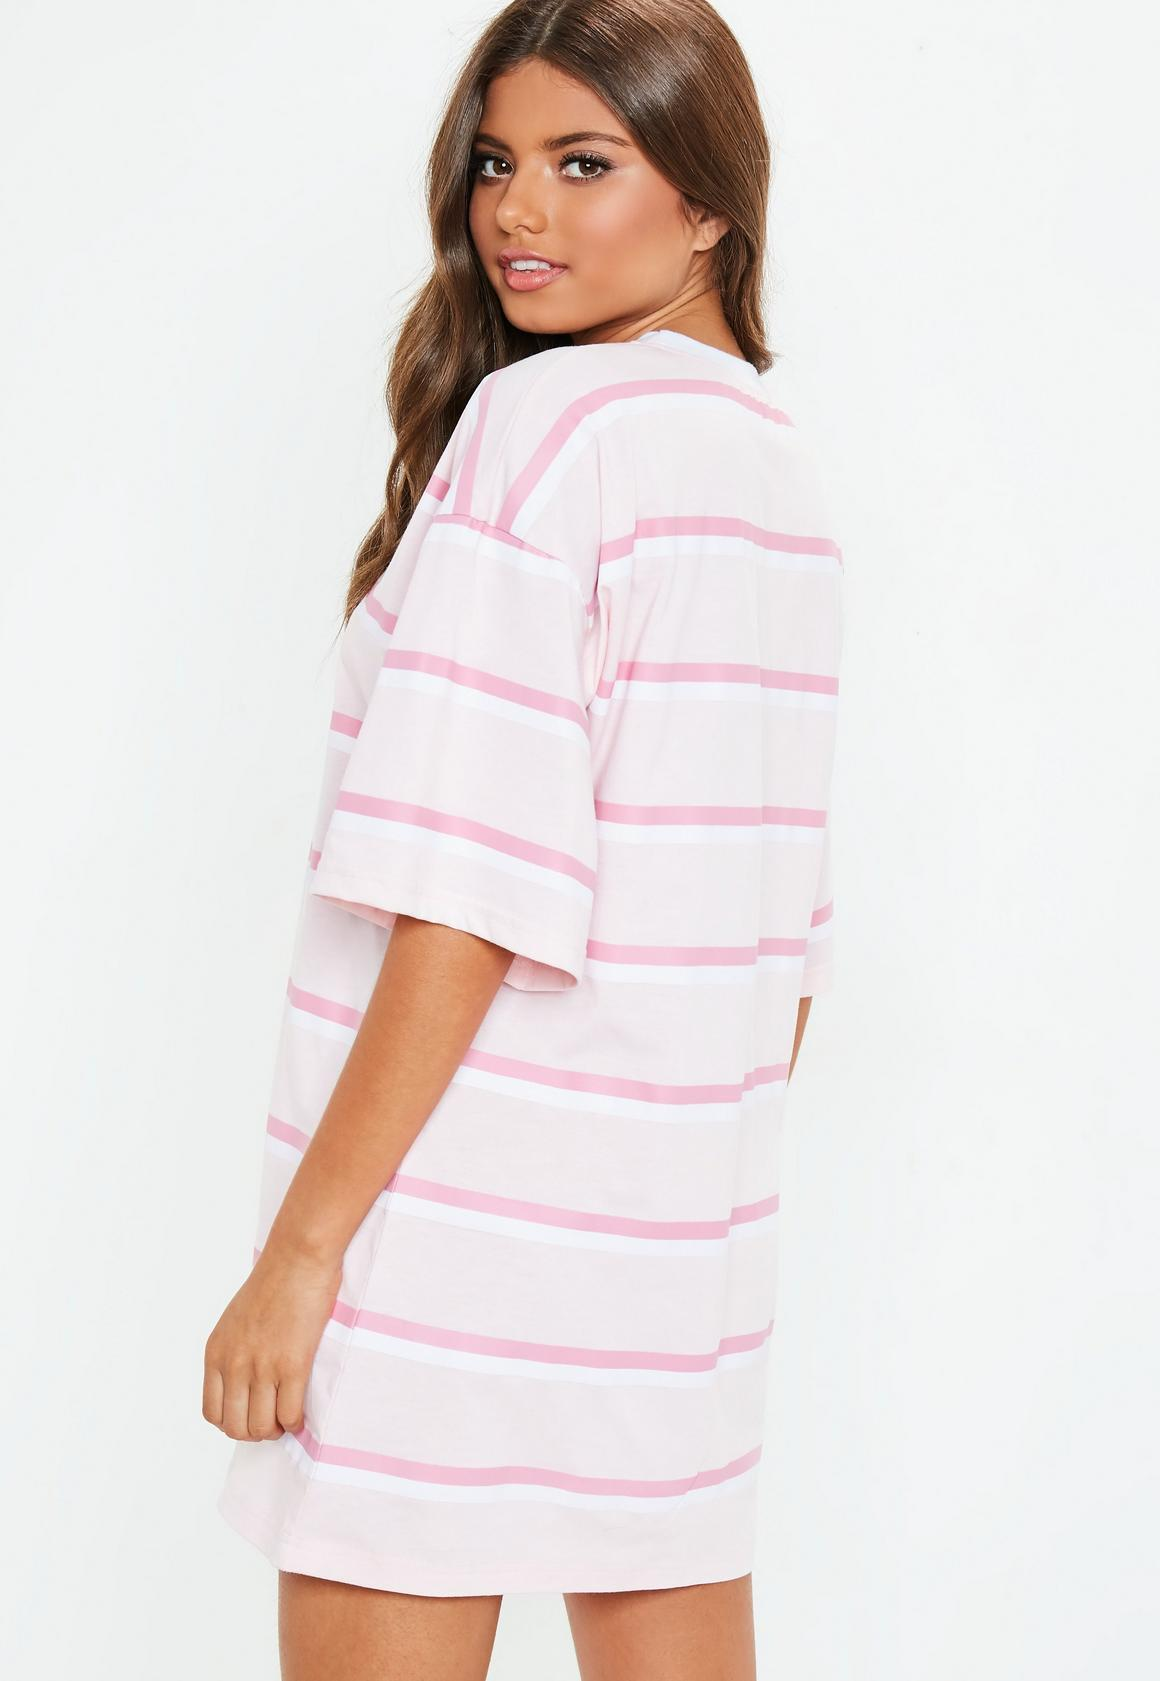 ccf90c71 Missguided Striped Oversized T shirt Dress at £15   love the brands